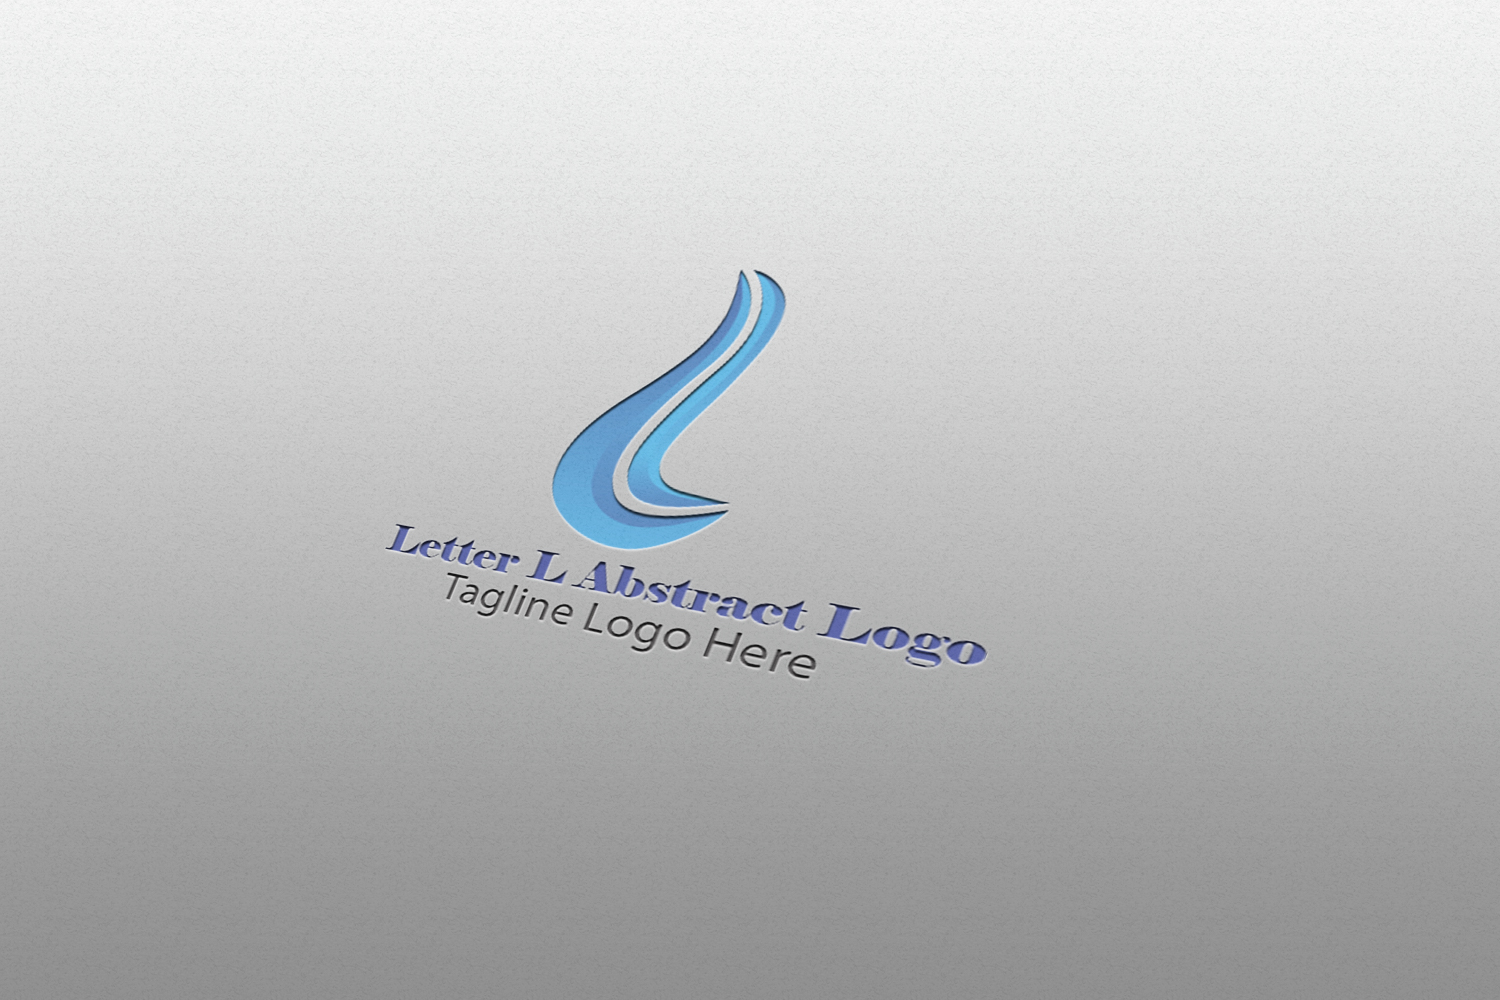 Premium Letter L Abstract Logo example image 3